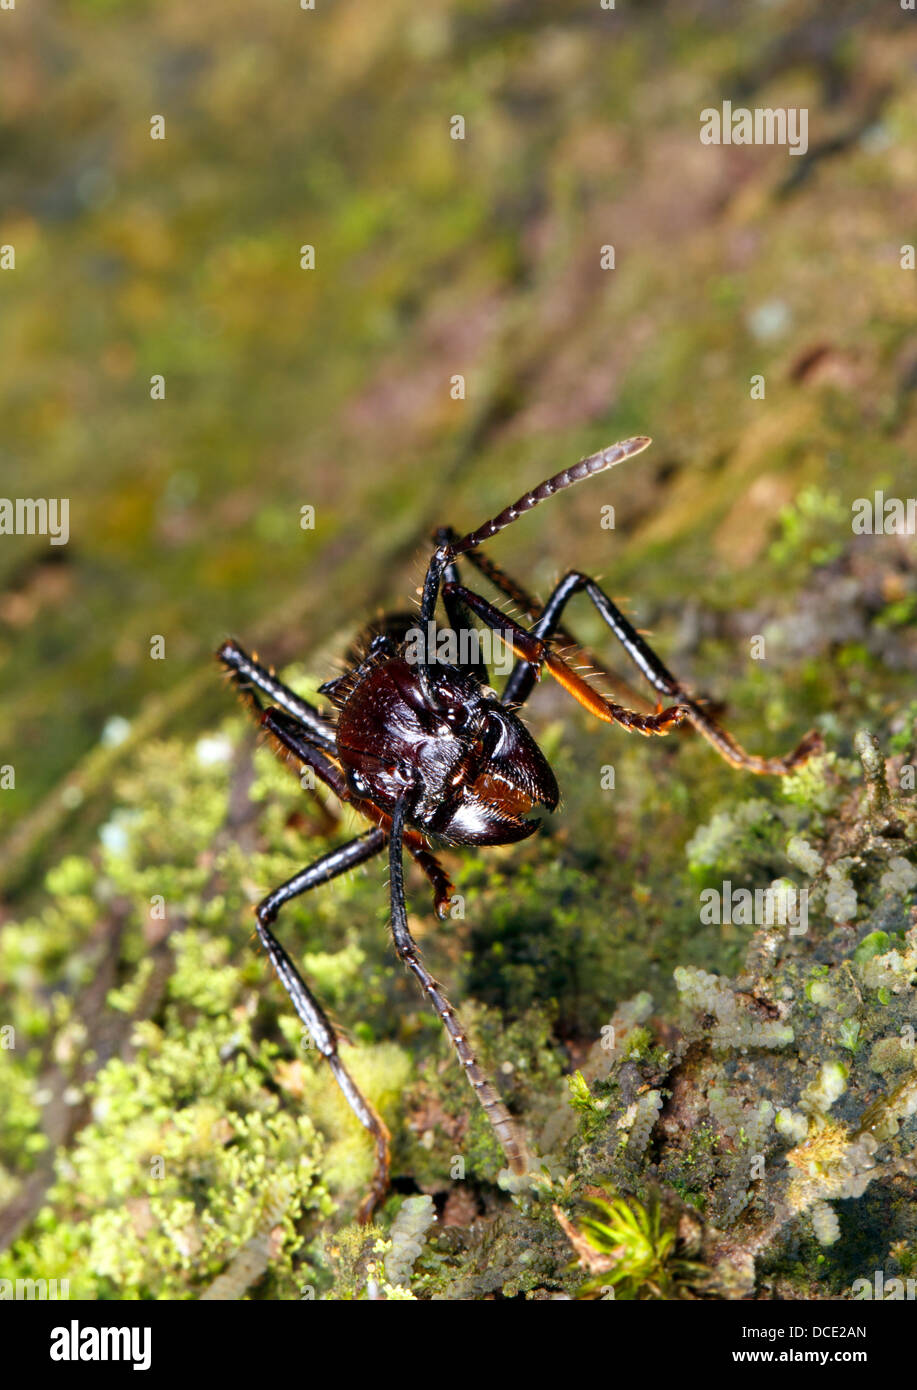 Bullet or Conga Ant (Paraponera clavata) in the rainforest, Ecuador. A dangerous species with a very painful sting. Stock Photo